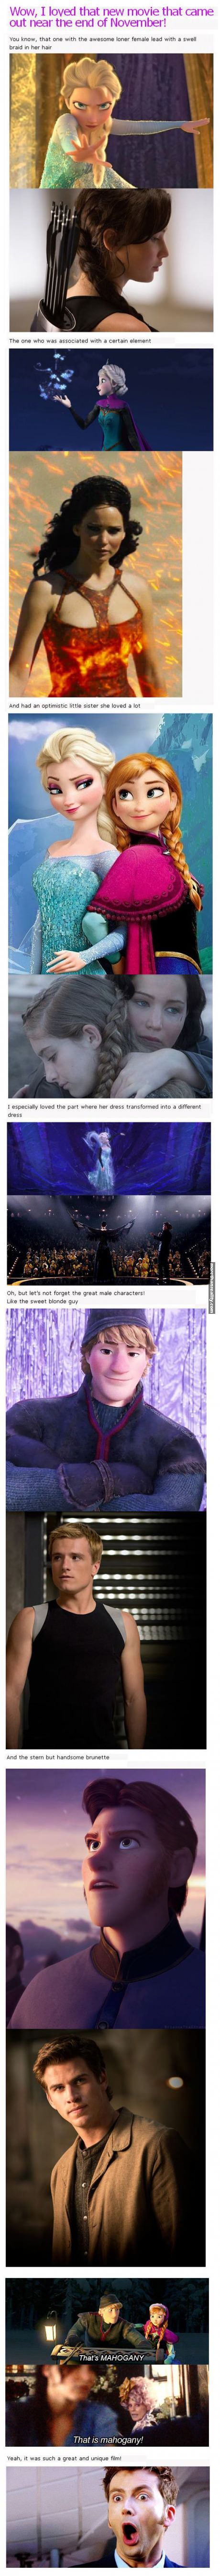 Resemblances between Frozen and Catching Fire | More Than Reality